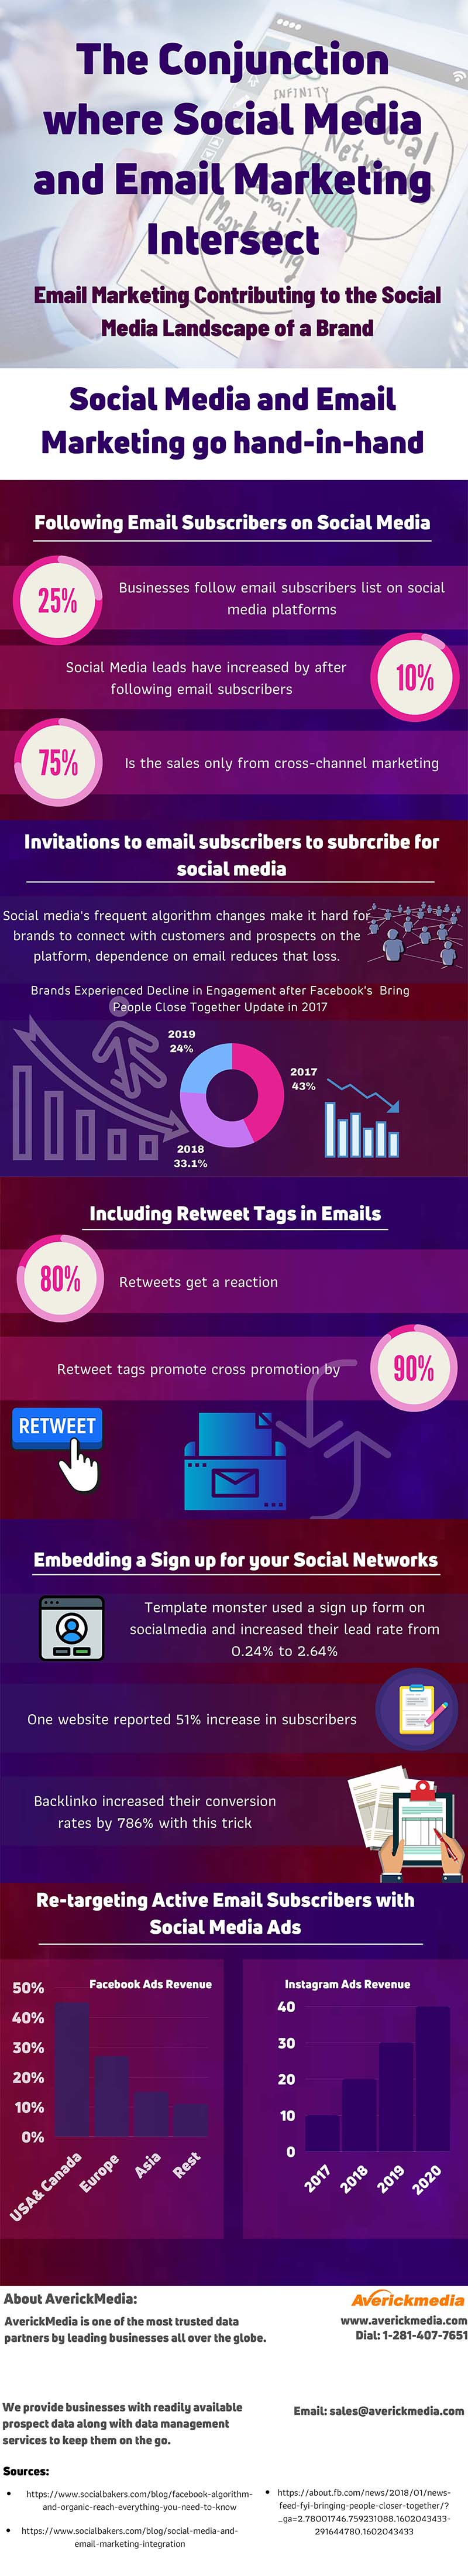 infographic-the-conjunction-where-social-media-and-email-marketing-intersect